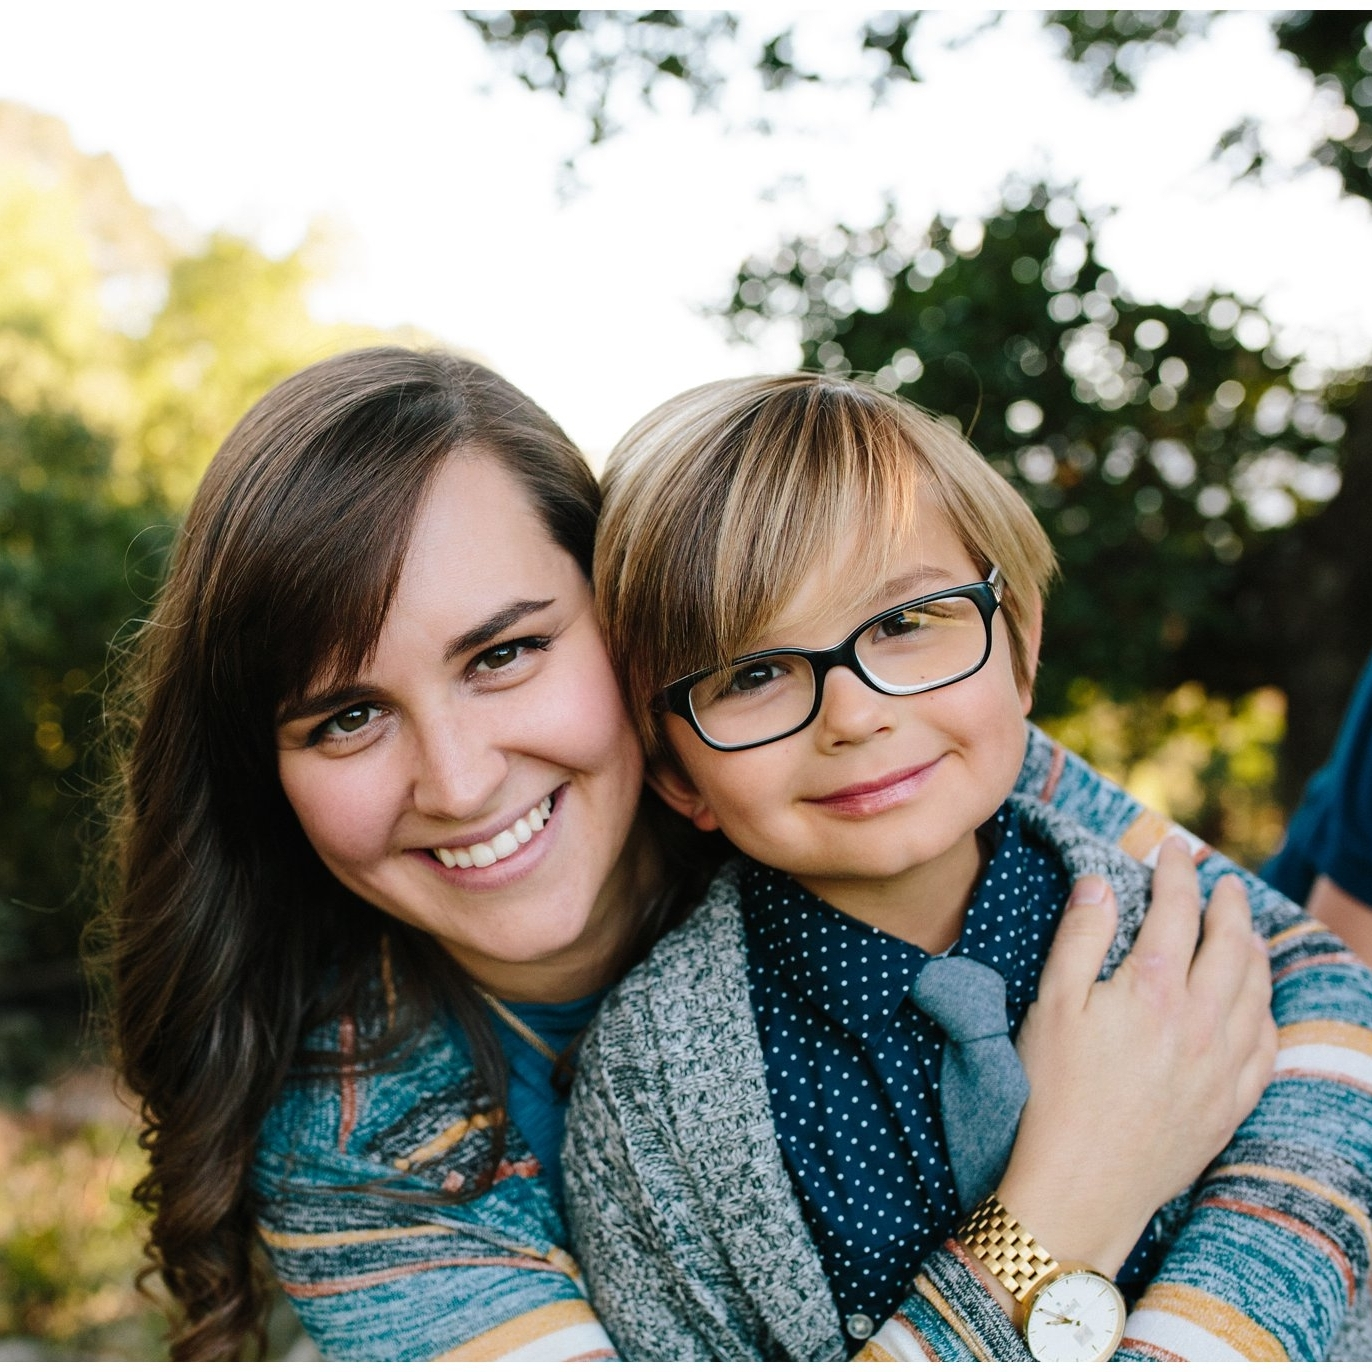 """"""" I highly highly recommend Michelle! She did our family photos this year and they are perfection. She's so sweet and talented and you will be thrilled with your photos! """"- Molly Williams, Novato CA -"""